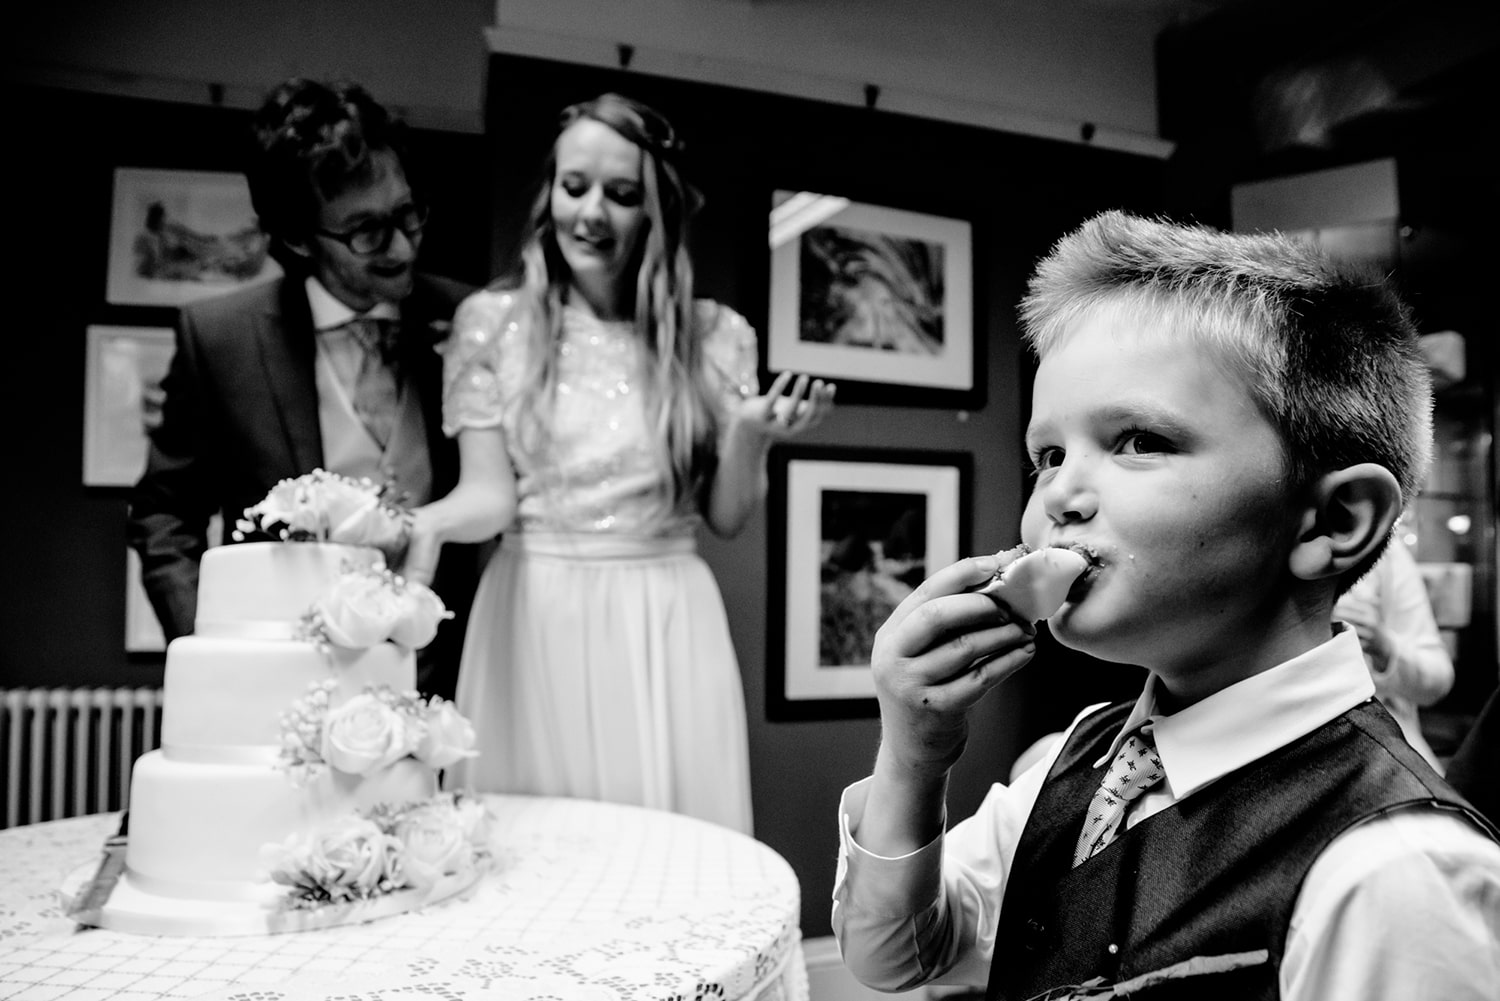 boy trying the cake